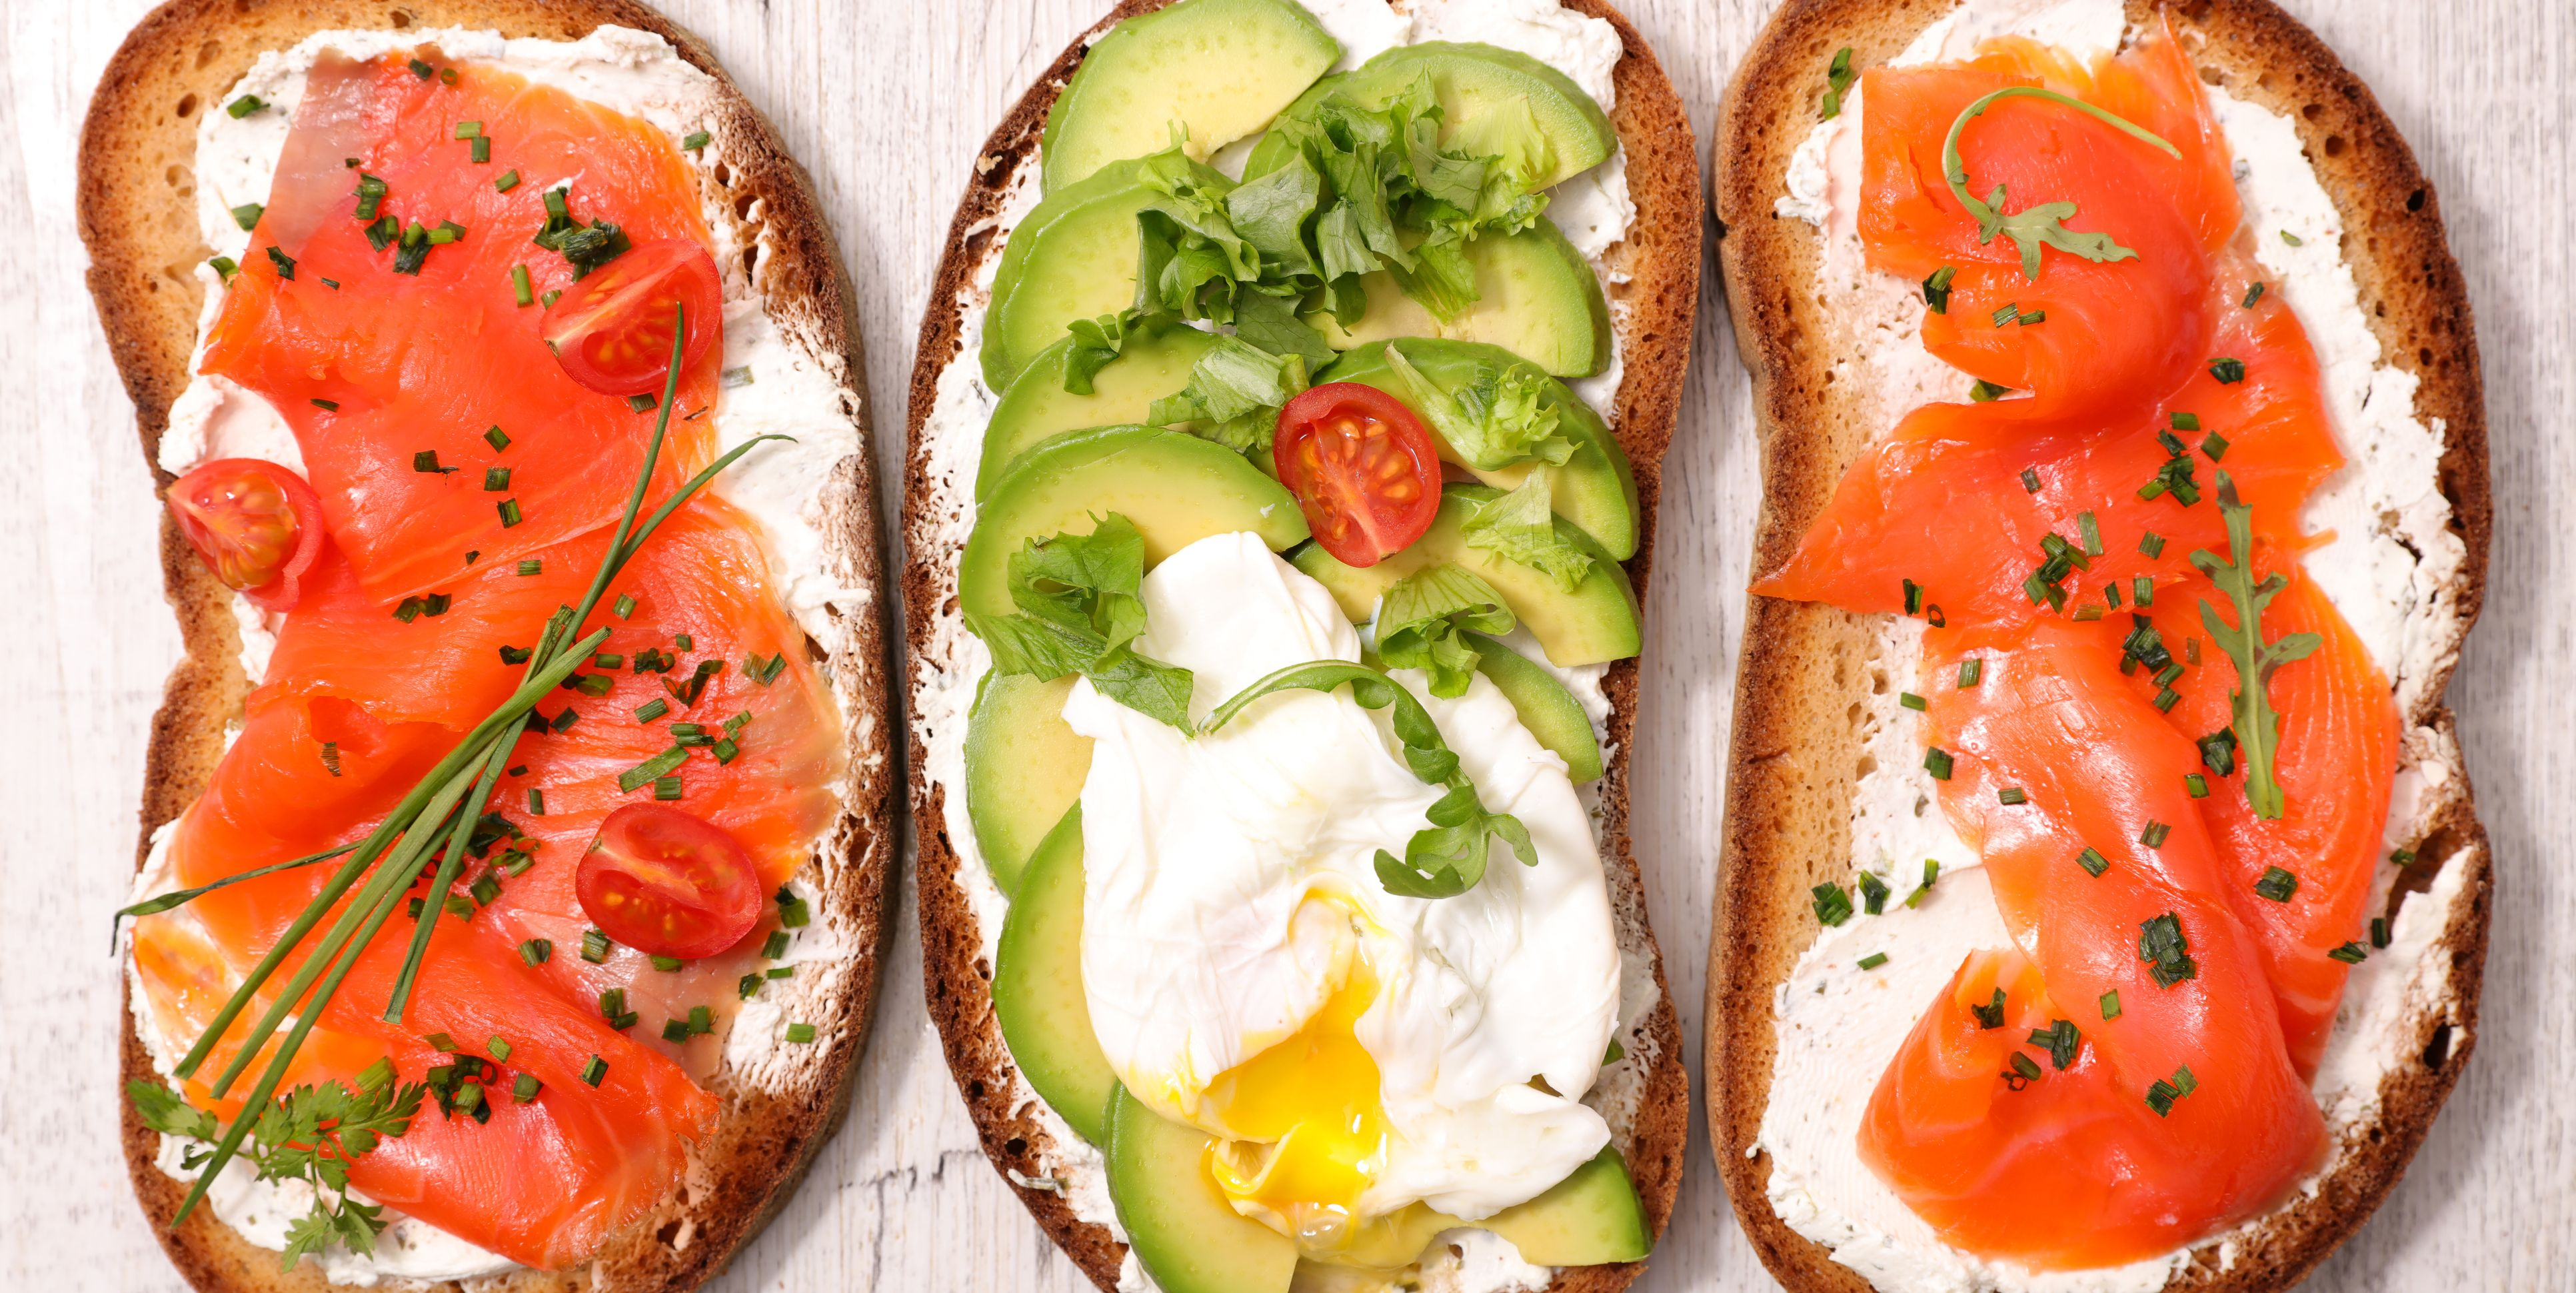 20 High Protein Breakfast Ideas For All-Day Energy